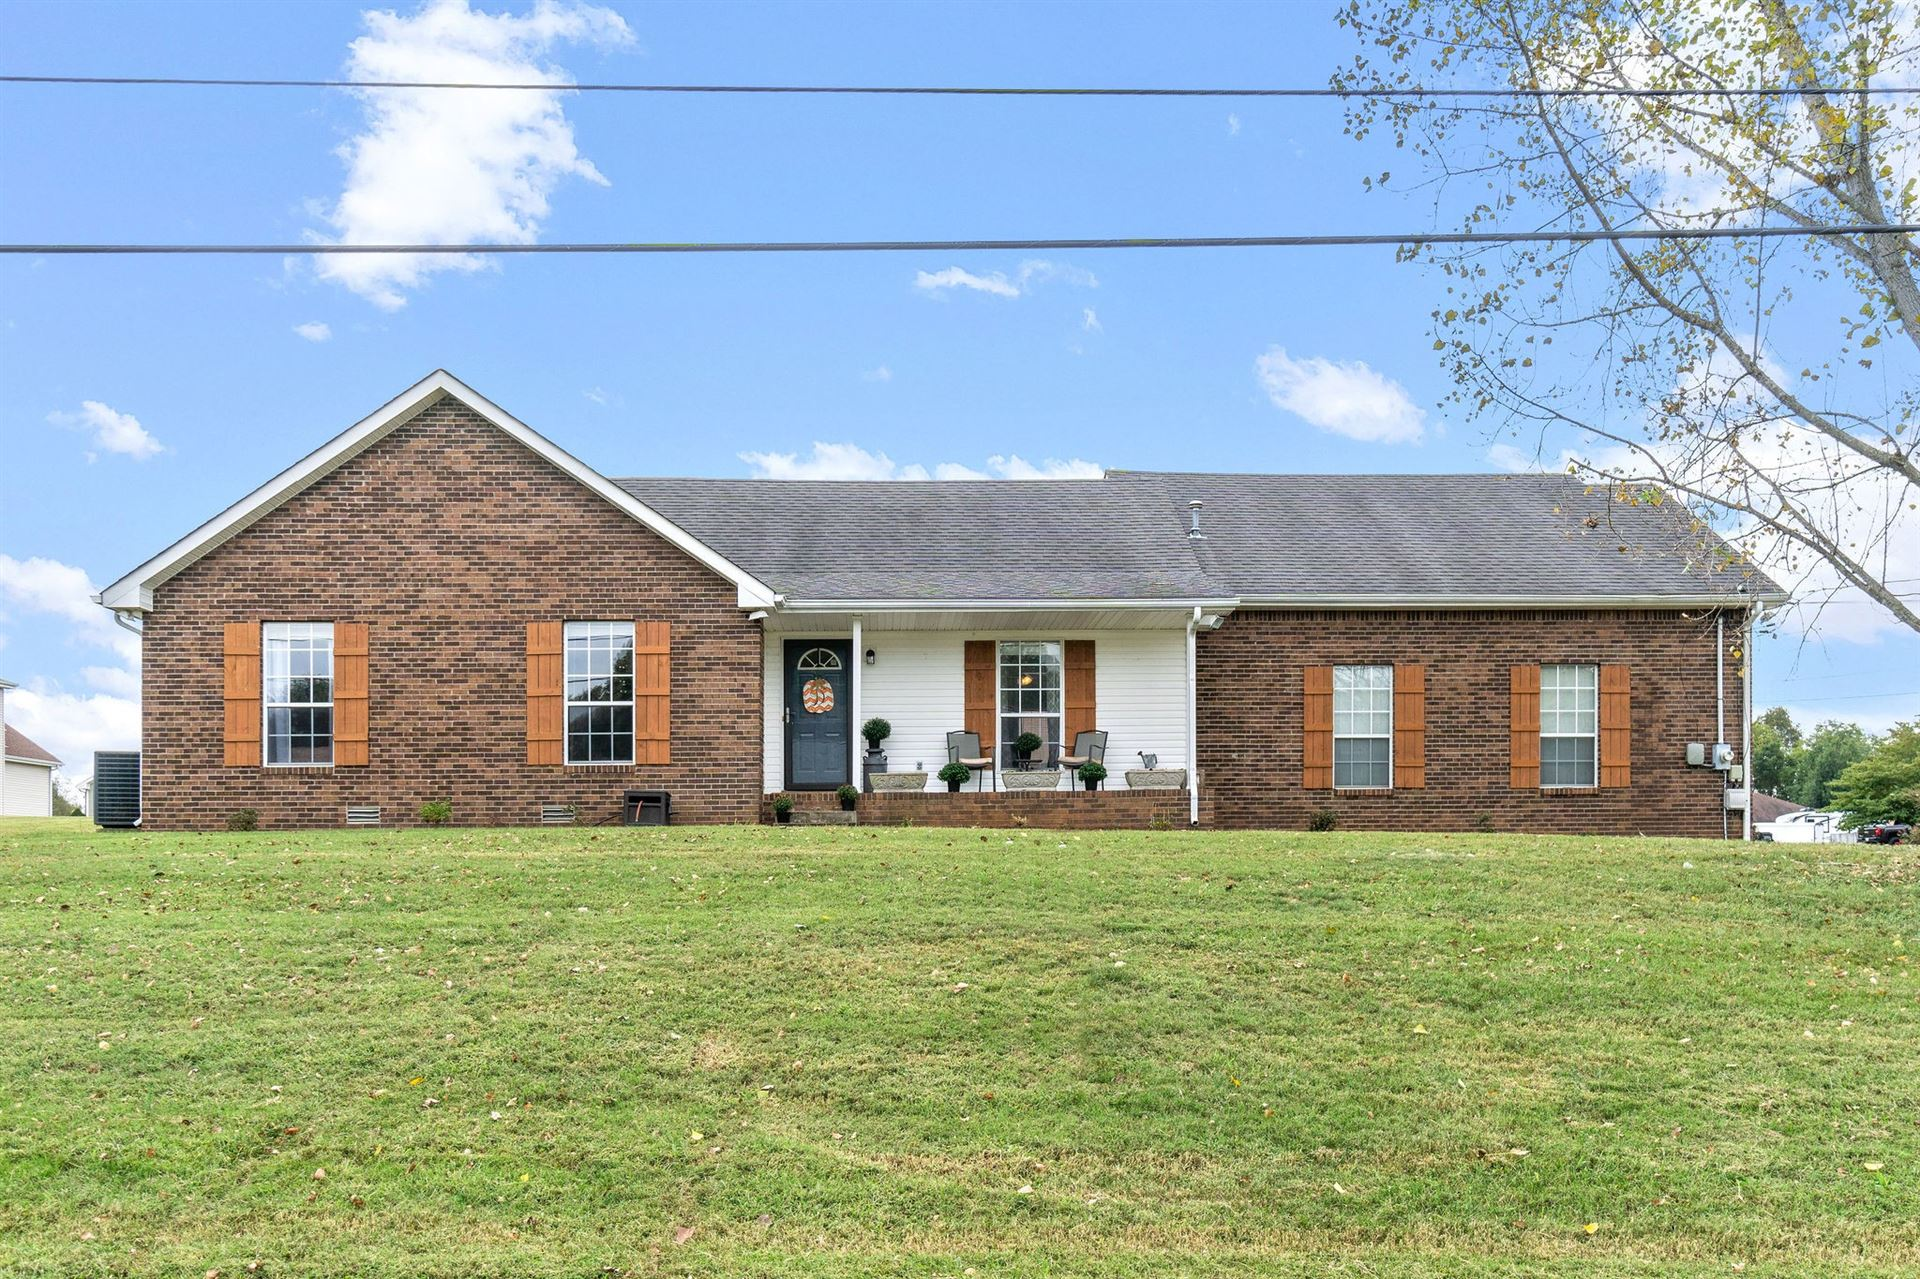 1401 S. Shadowlawn Ct., Clarksville, TN 37040 - MLS#: 2189942